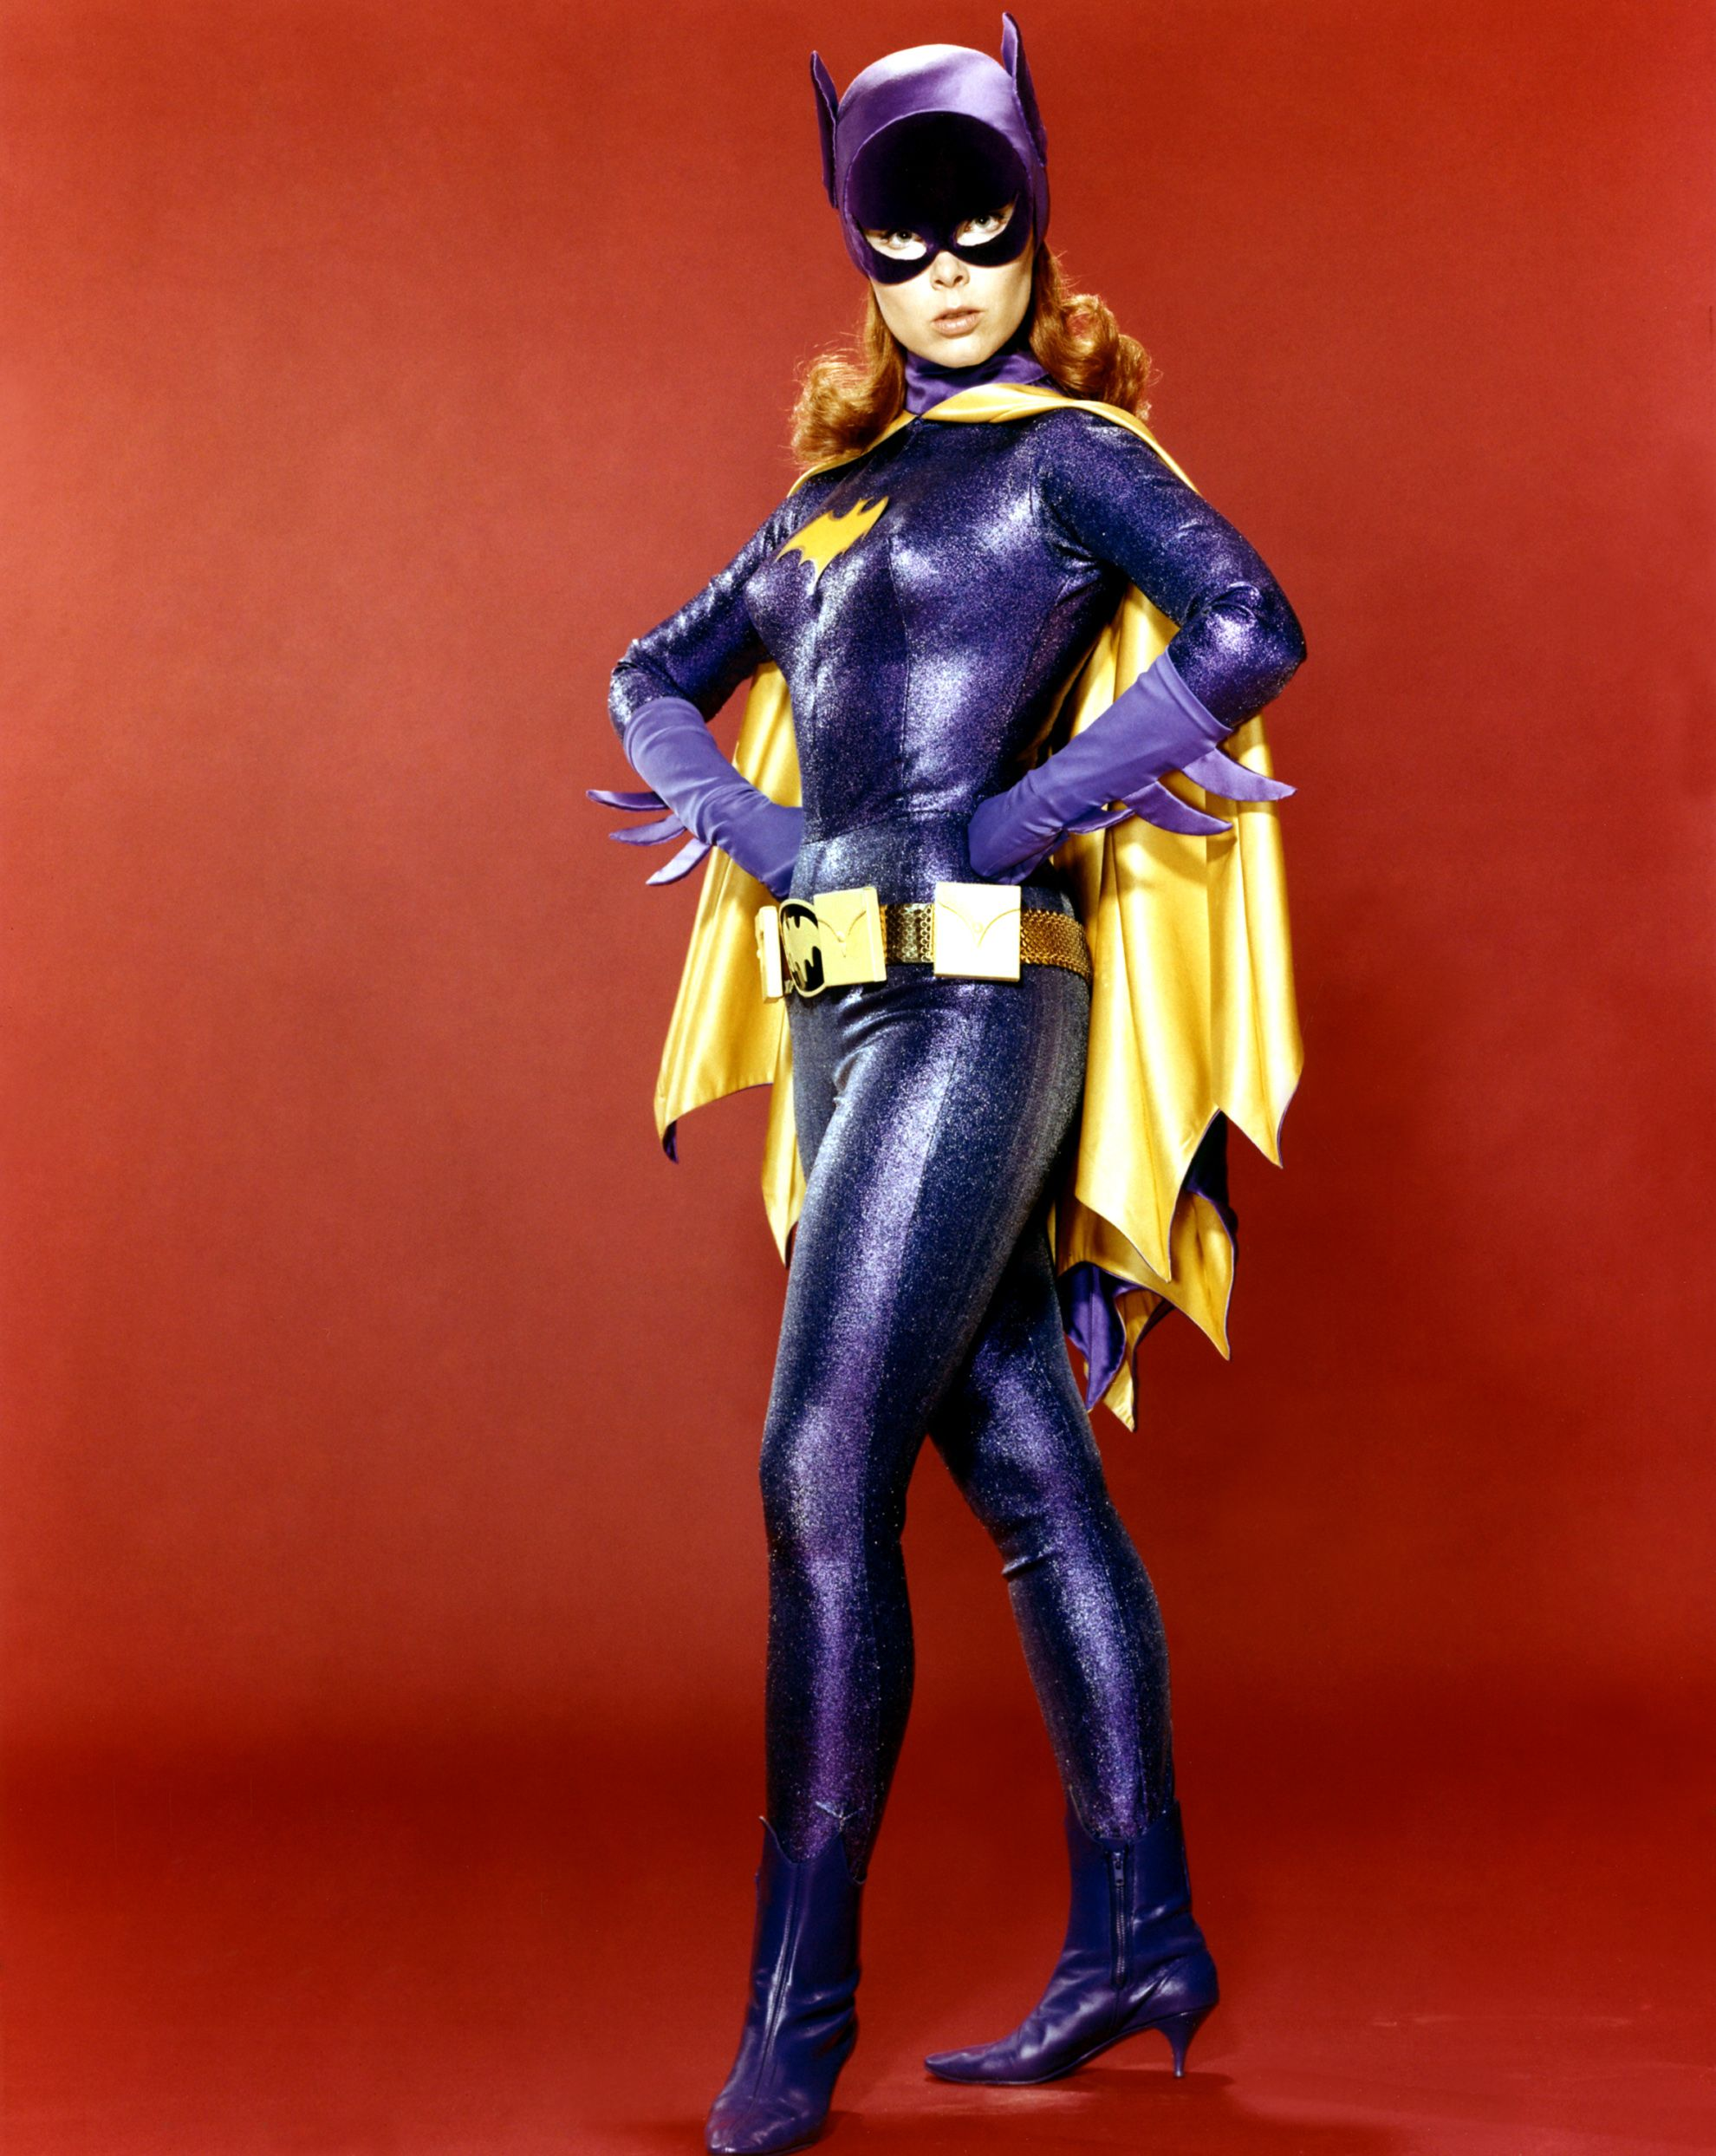 Remembering Batgirl Actress Yvonne Craig in 8 Stunning Photos